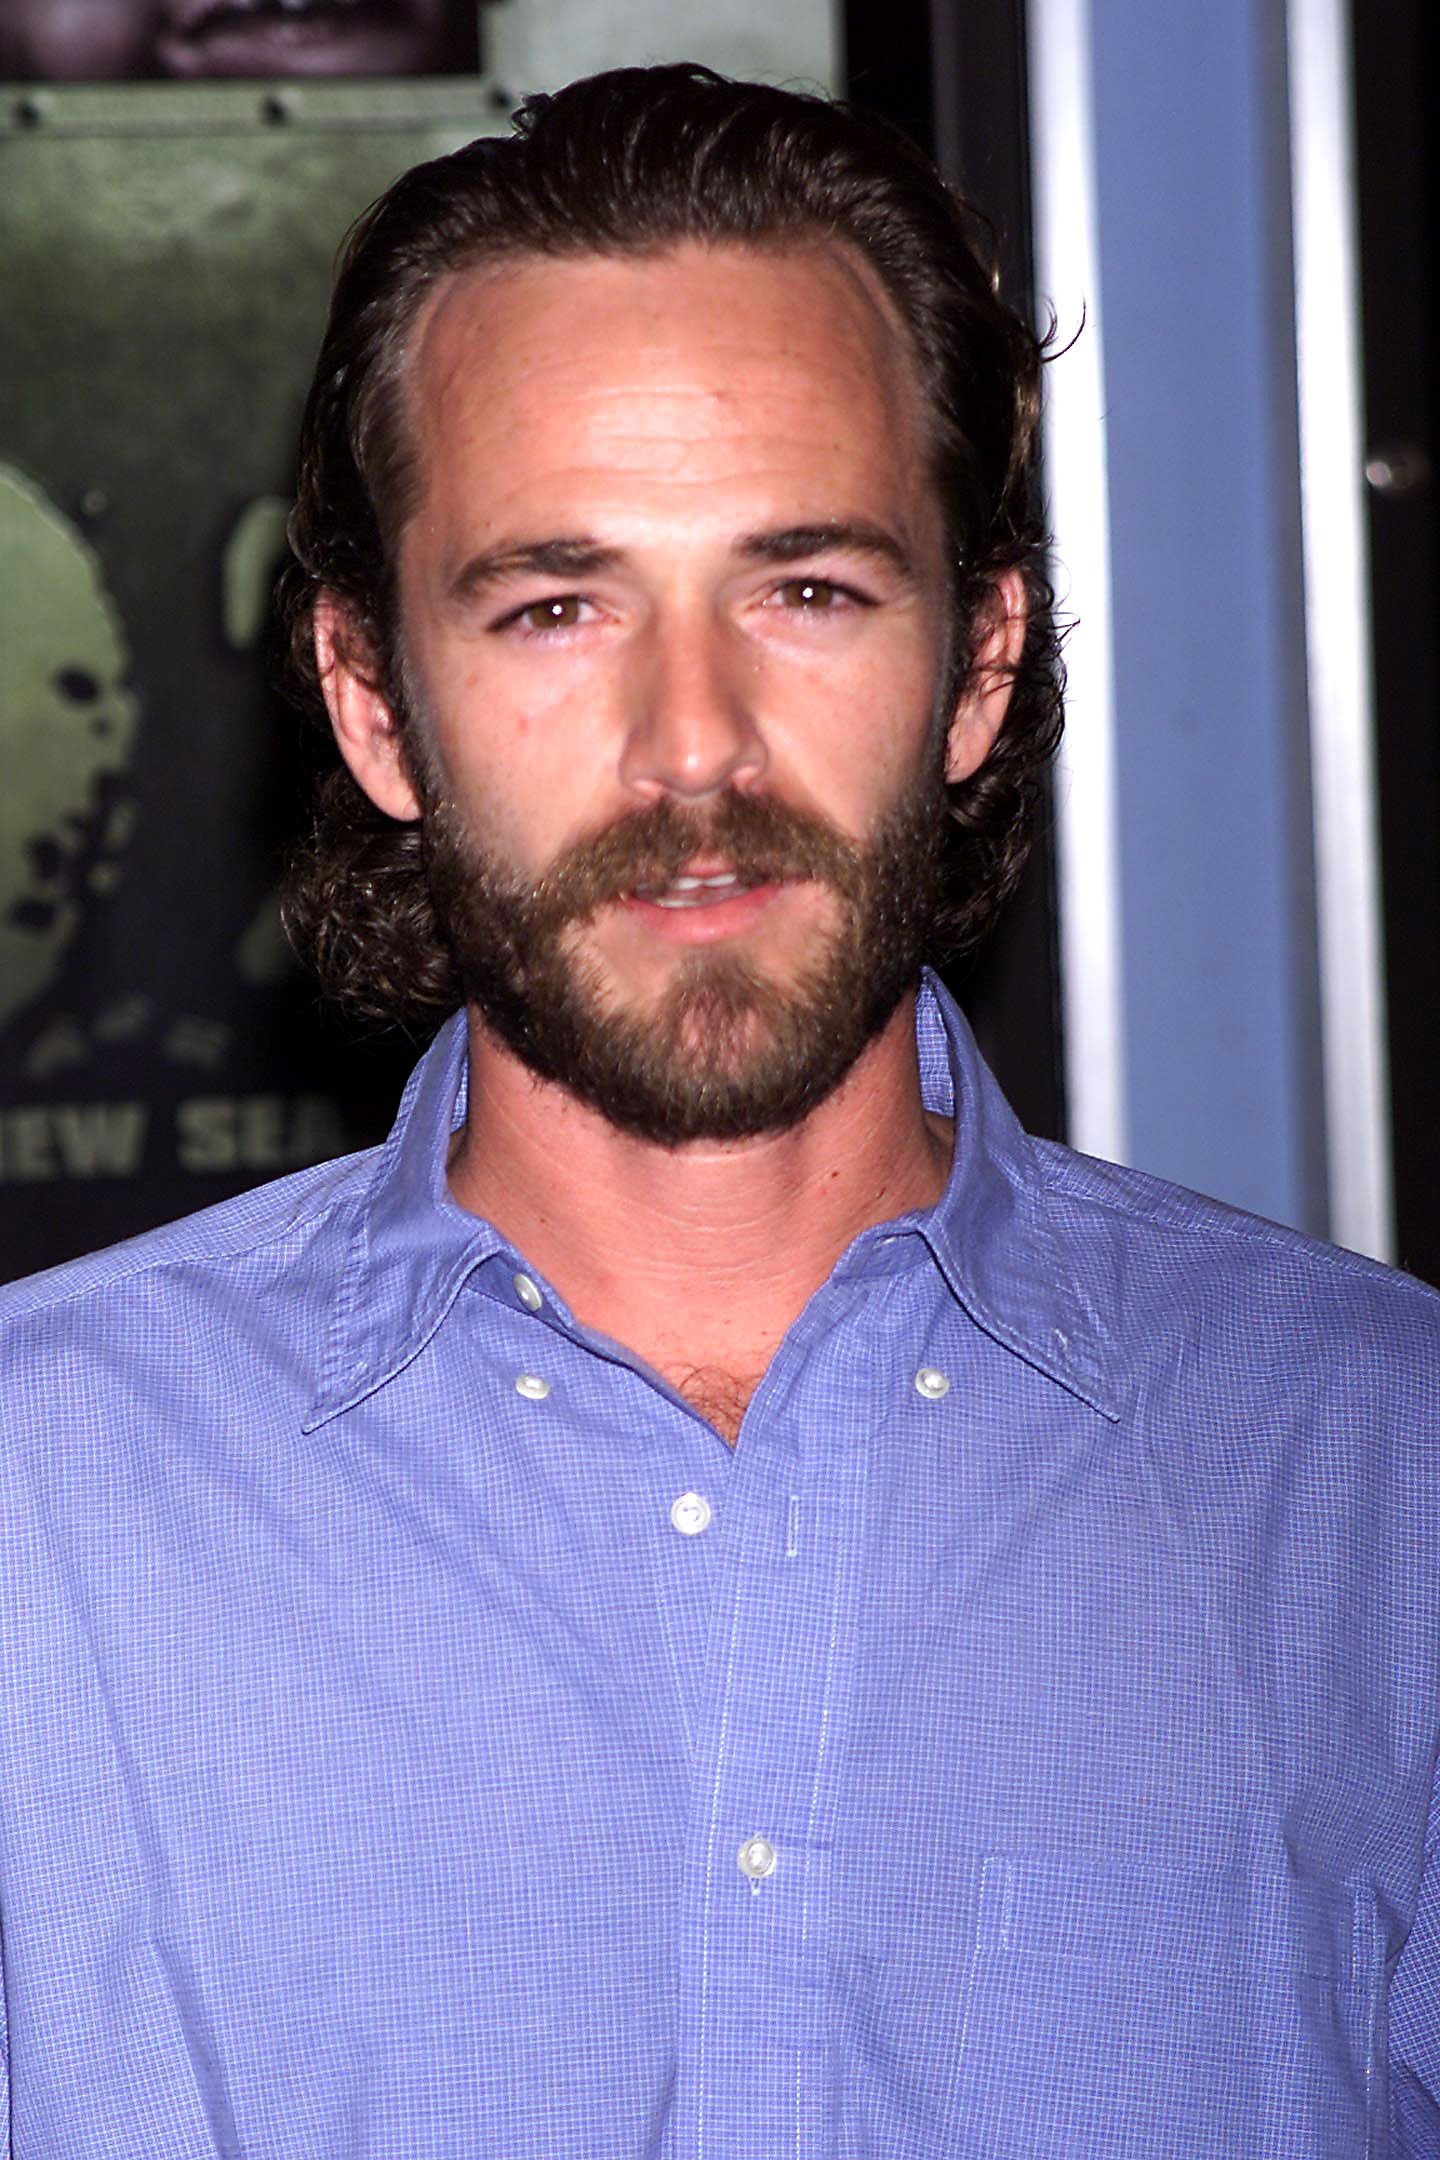 Luke Perry Through the Years - The Ohio native transitioned to more adult content, starring on HBO's Oz as Reverend Jeremiah Cloutier from 2001 to 2002.